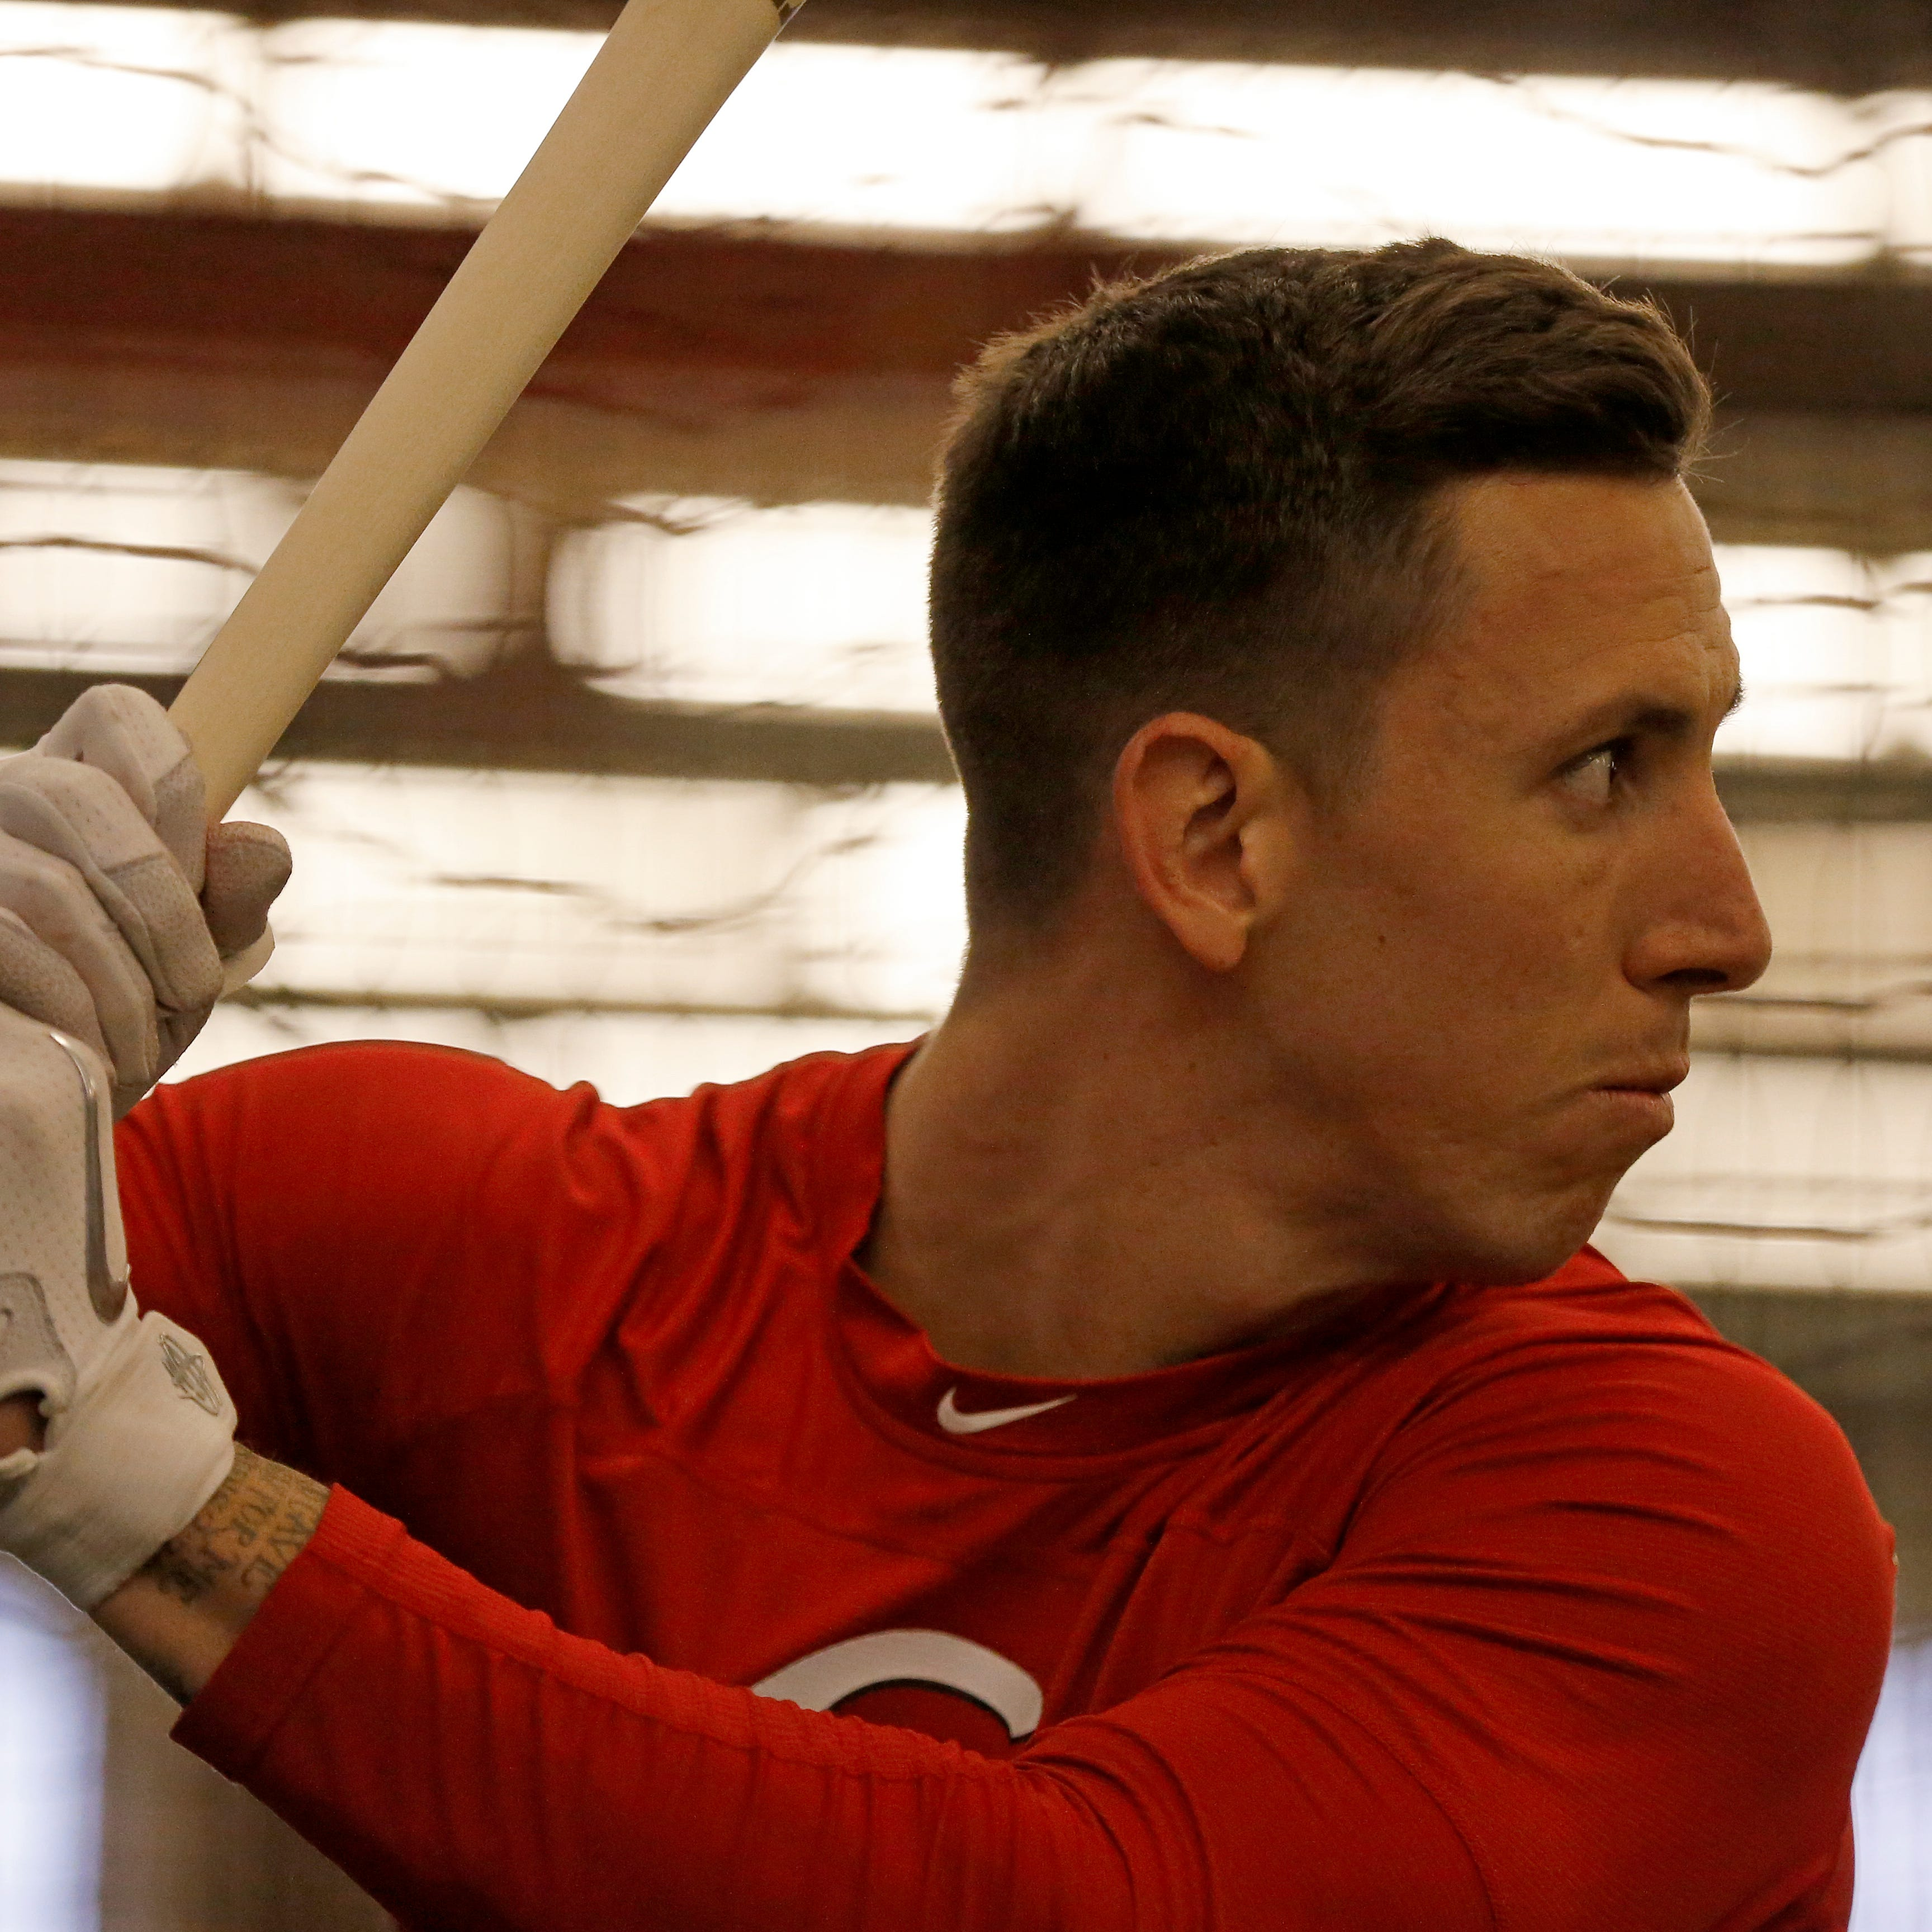 Cincinnati Reds pitcher Michael Lorenzen moving closer to playing center field in games